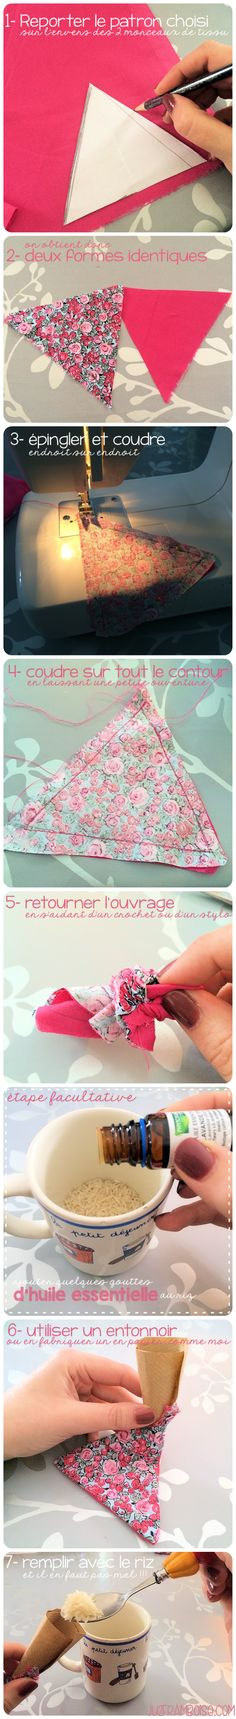 Tendance Sac 2018 : DIY : Tuto coussin nuage chauffant Tendance Sac 2018 : DIY : Tuto coussin nuage chauffant avec riz et hu. Coin Couture, Couture Sewing, Diy And Crafts, Crafts For Kids, Cute Sewing Projects, Cute Banners, Creation Couture, Sewing Art, Beautiful Crochet